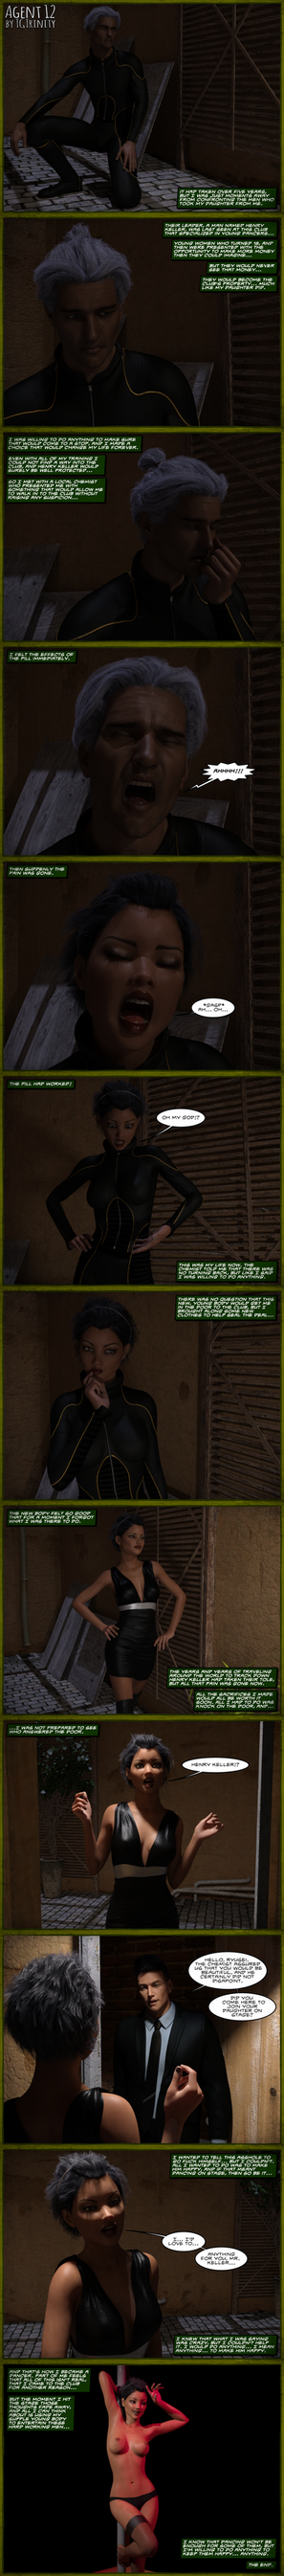 TG COMIC: AGENT 12 by TGTrinity